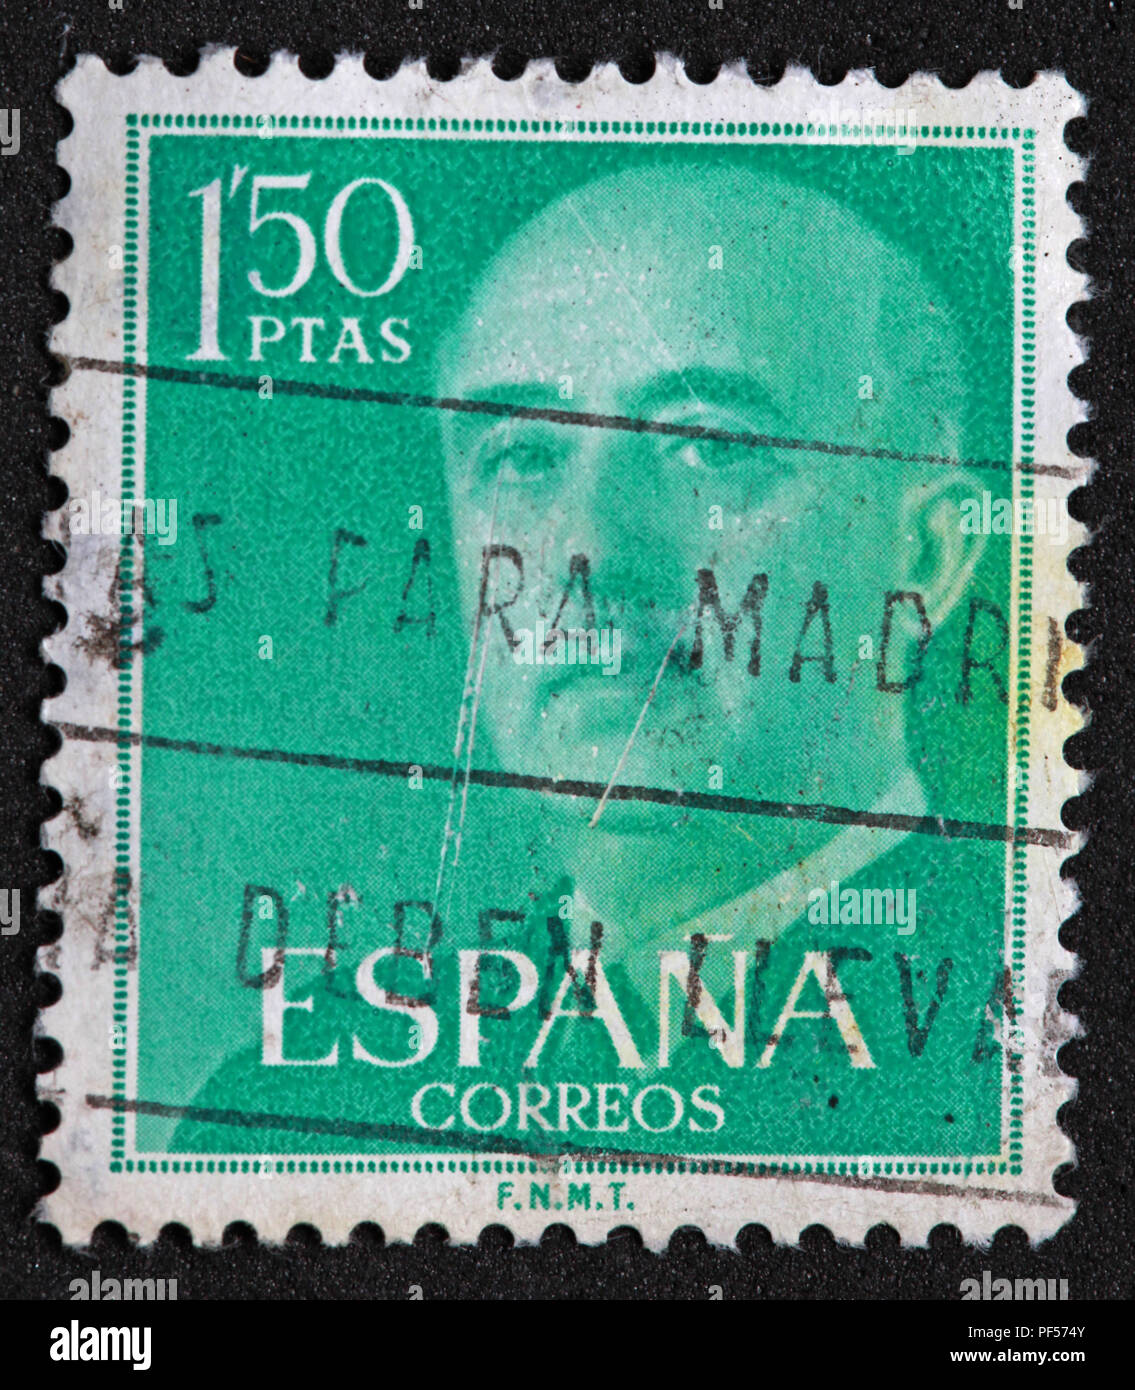 Used 1.5ptas Peseta green stamp - Stock Image